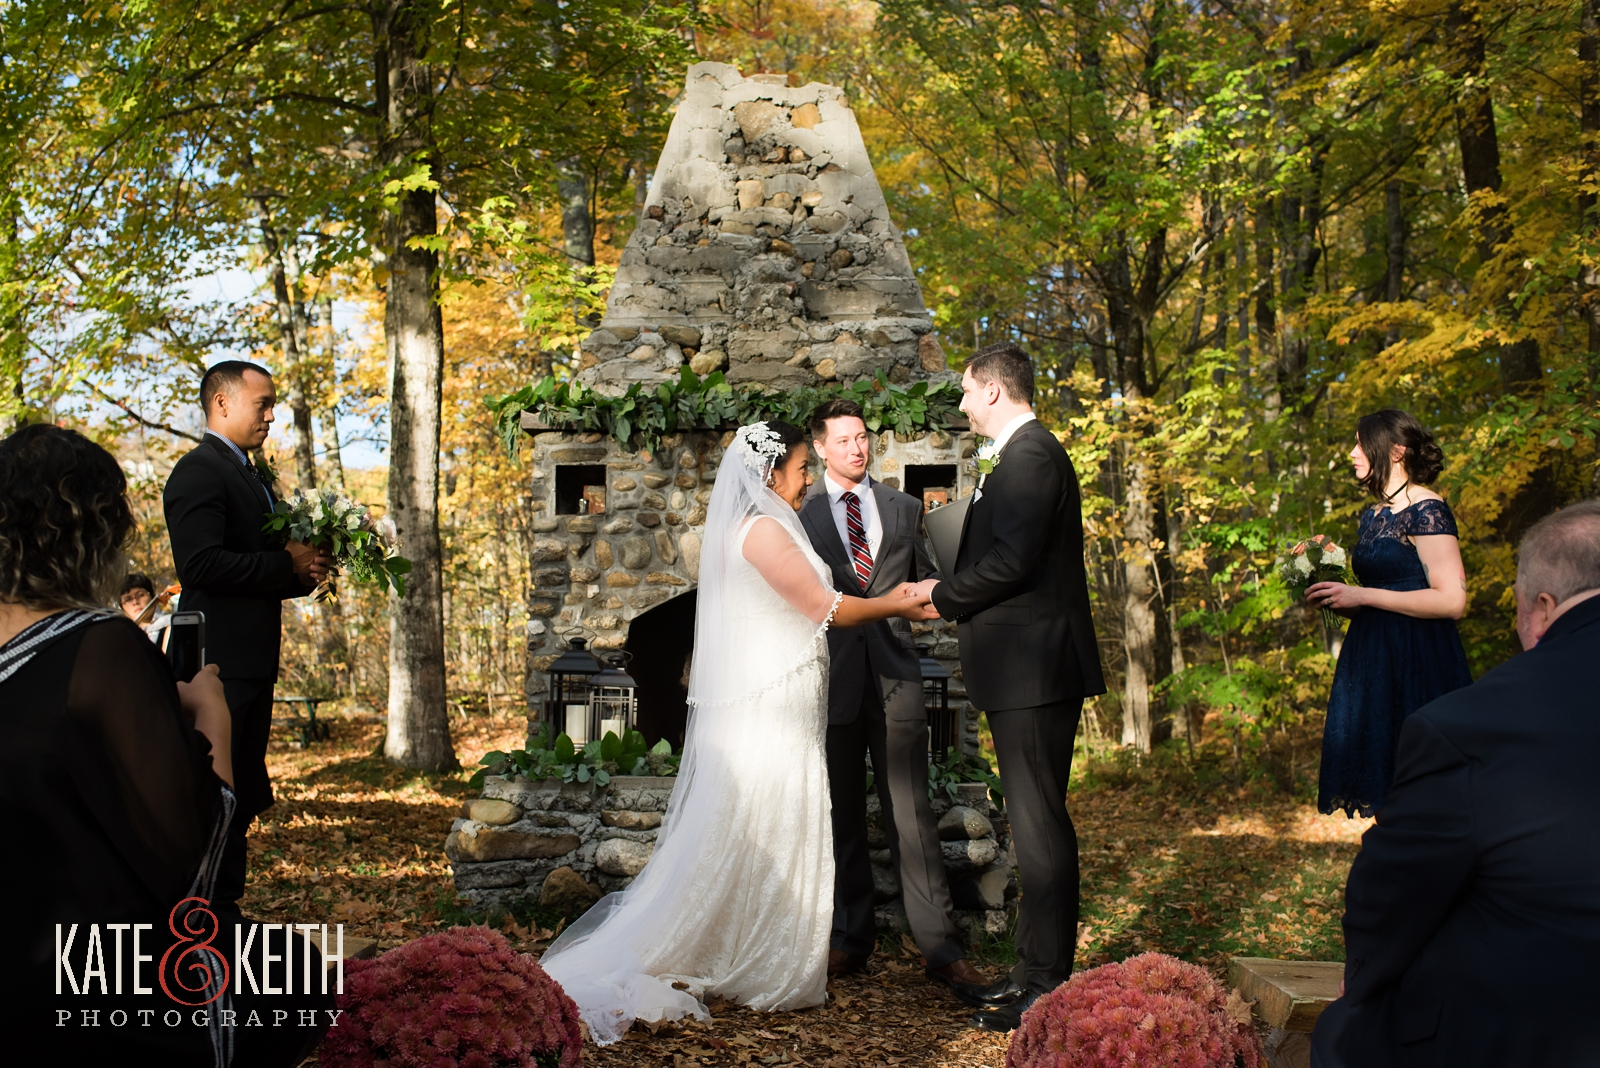 wedding weekend, Jackson, New Hampshire, Whitney's Inn, wedding ceremony, wedding photographers, outdoor wedding ceremony, weekend events, outdoor wedding,  autumn wedding, fall wedding, mountain wedding, weekend wedding, first look, New England, natural wedding photos, fall wedding ceremony outside